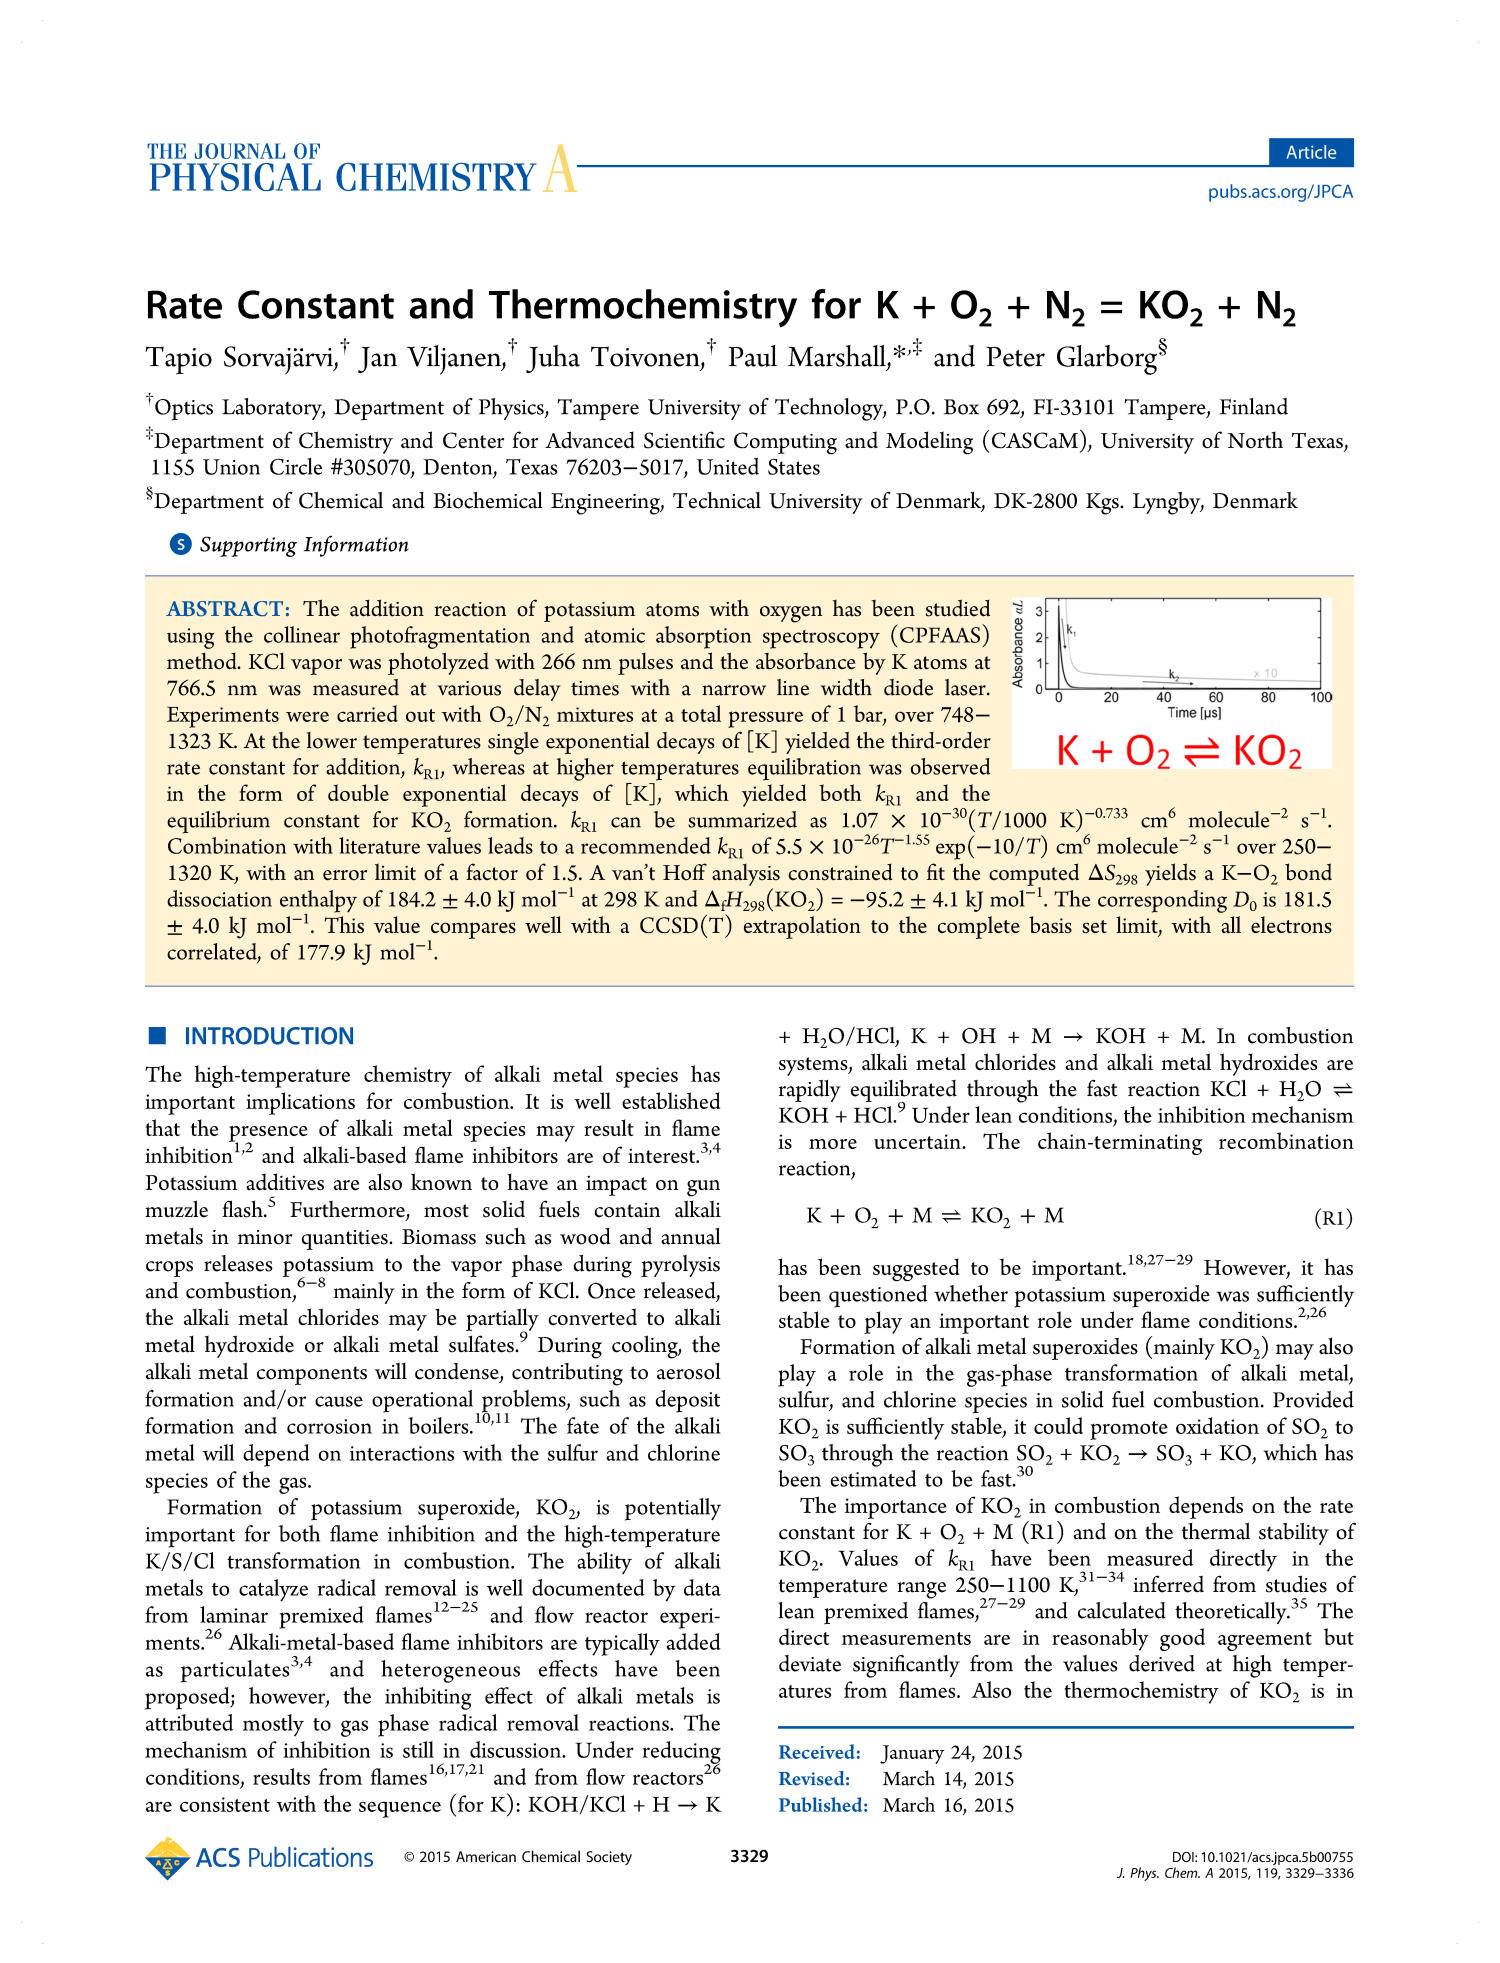 Rate Constant and Thermochemistry for K + O2 + N2 = KO2 + N2                                                                                                      3329